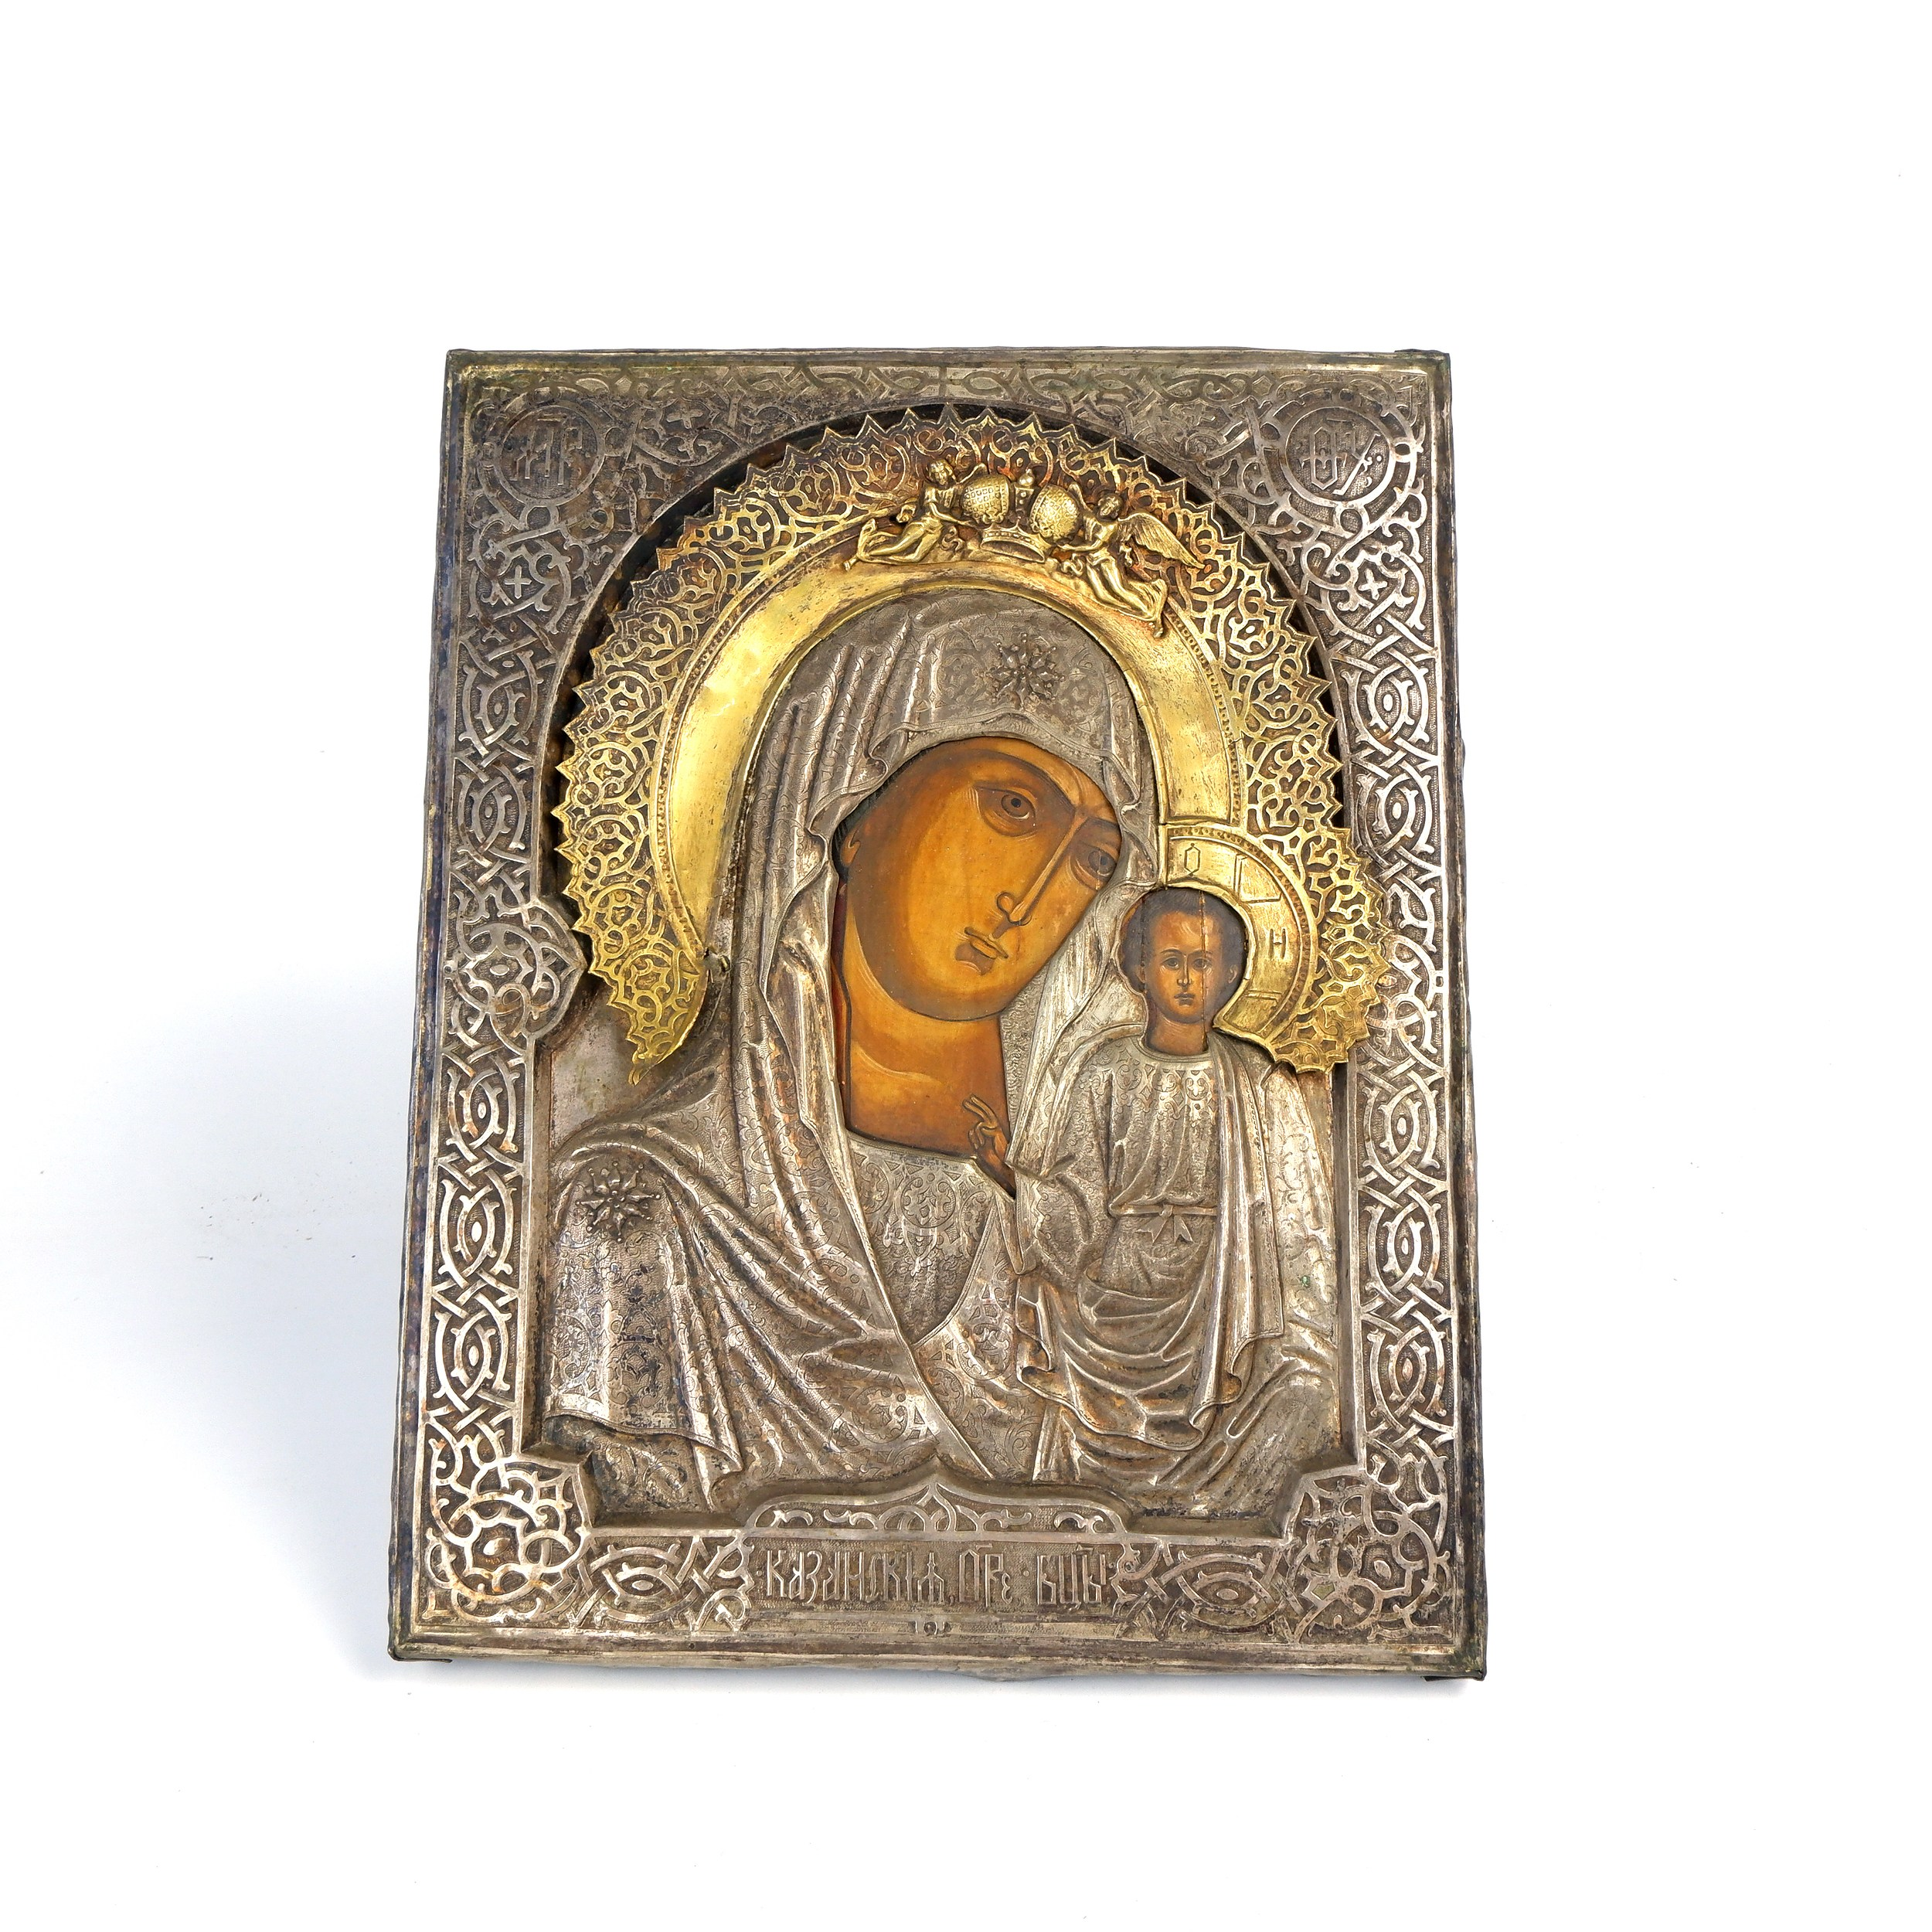 'Antique Russian Orthodox Icon of the Madonna and Child in an Intricate Pressed Tin and Brass Frame, Late 19th Century'